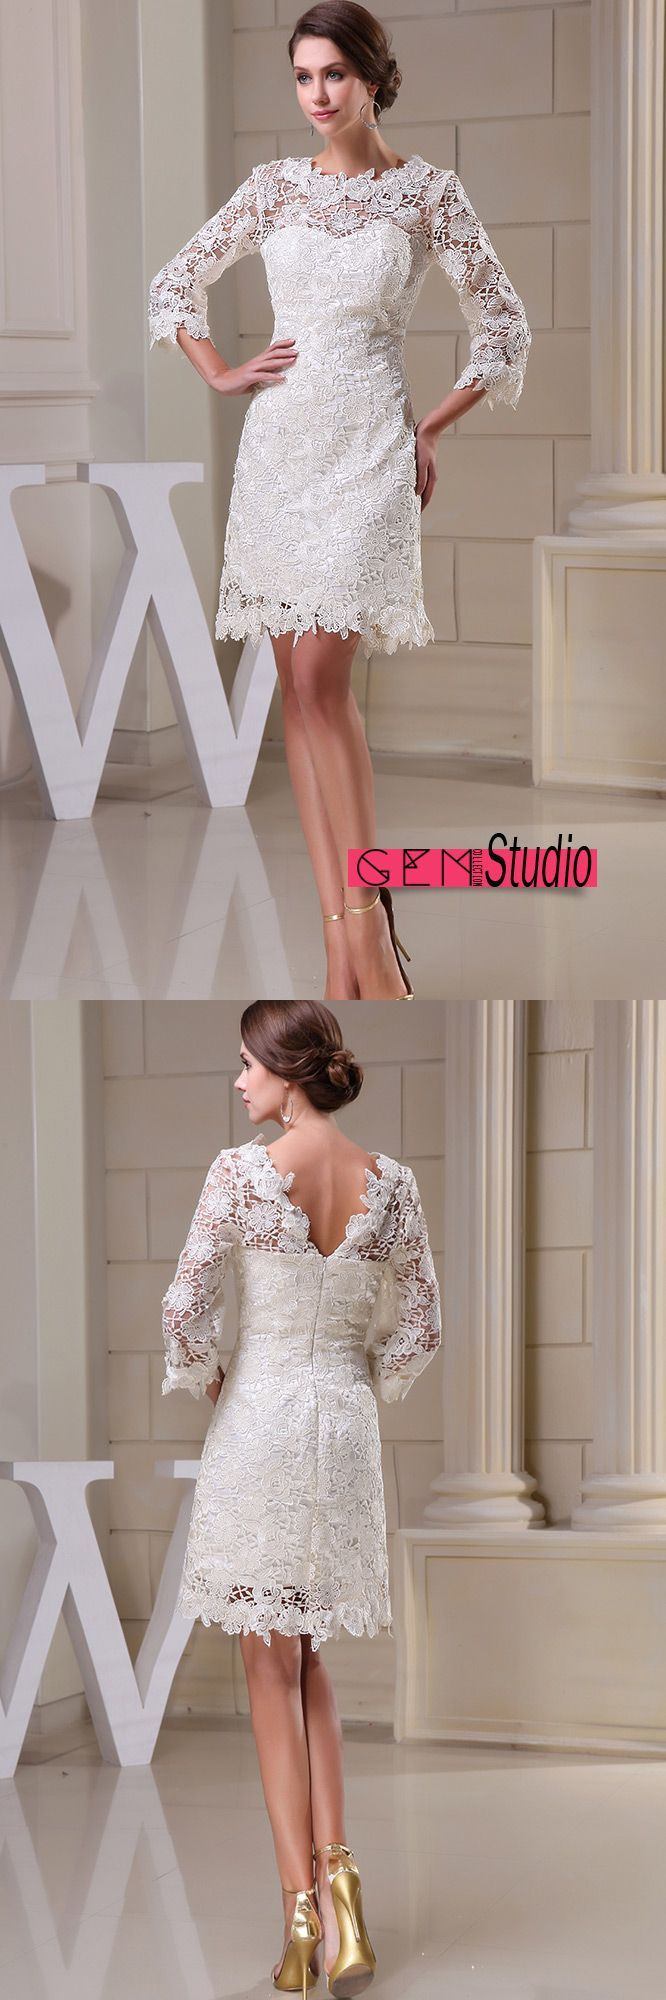 159 90 Lace Short Wedding Dresses With Sleeves For Reception A Line High Neck Style Op5041 158 4 Gemgrace Com Short Lace Wedding Dress Short Wedding Dress Short Bridal Dress [ 2000 x 666 Pixel ]